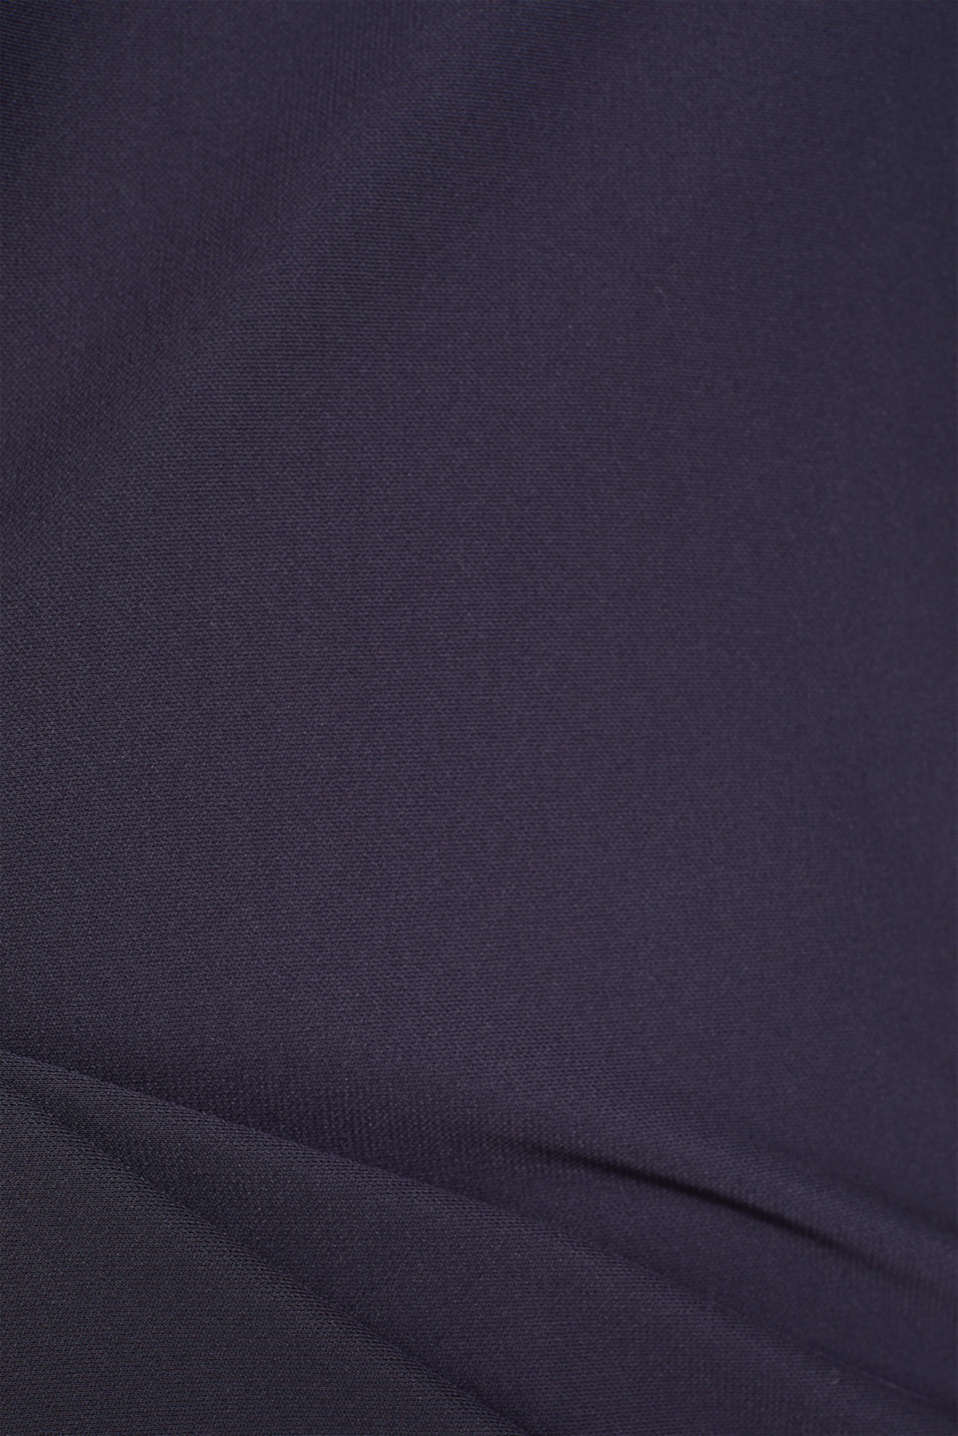 Long sleeve top with batwing sleeves, NAVY, detail image number 4